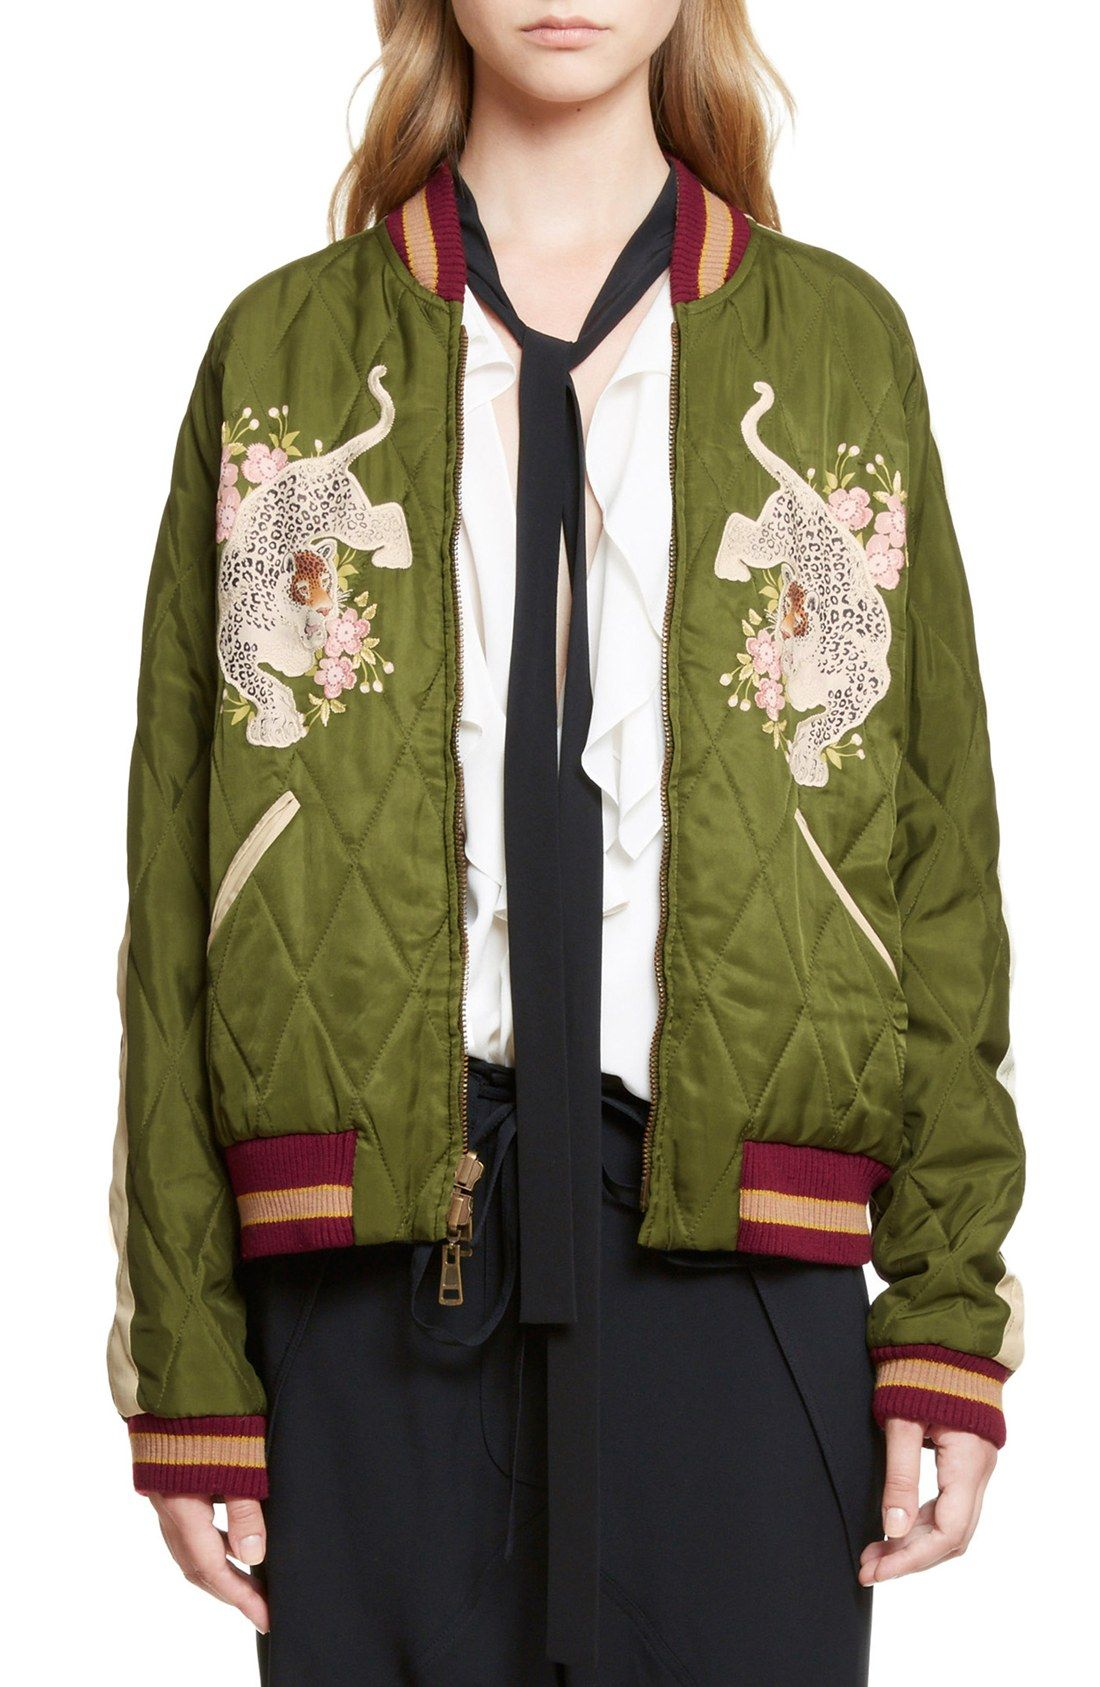 bb96e6c021626 Chloé Reversible Embroidered Tech Satin Bomber Jacket | Wearable ...